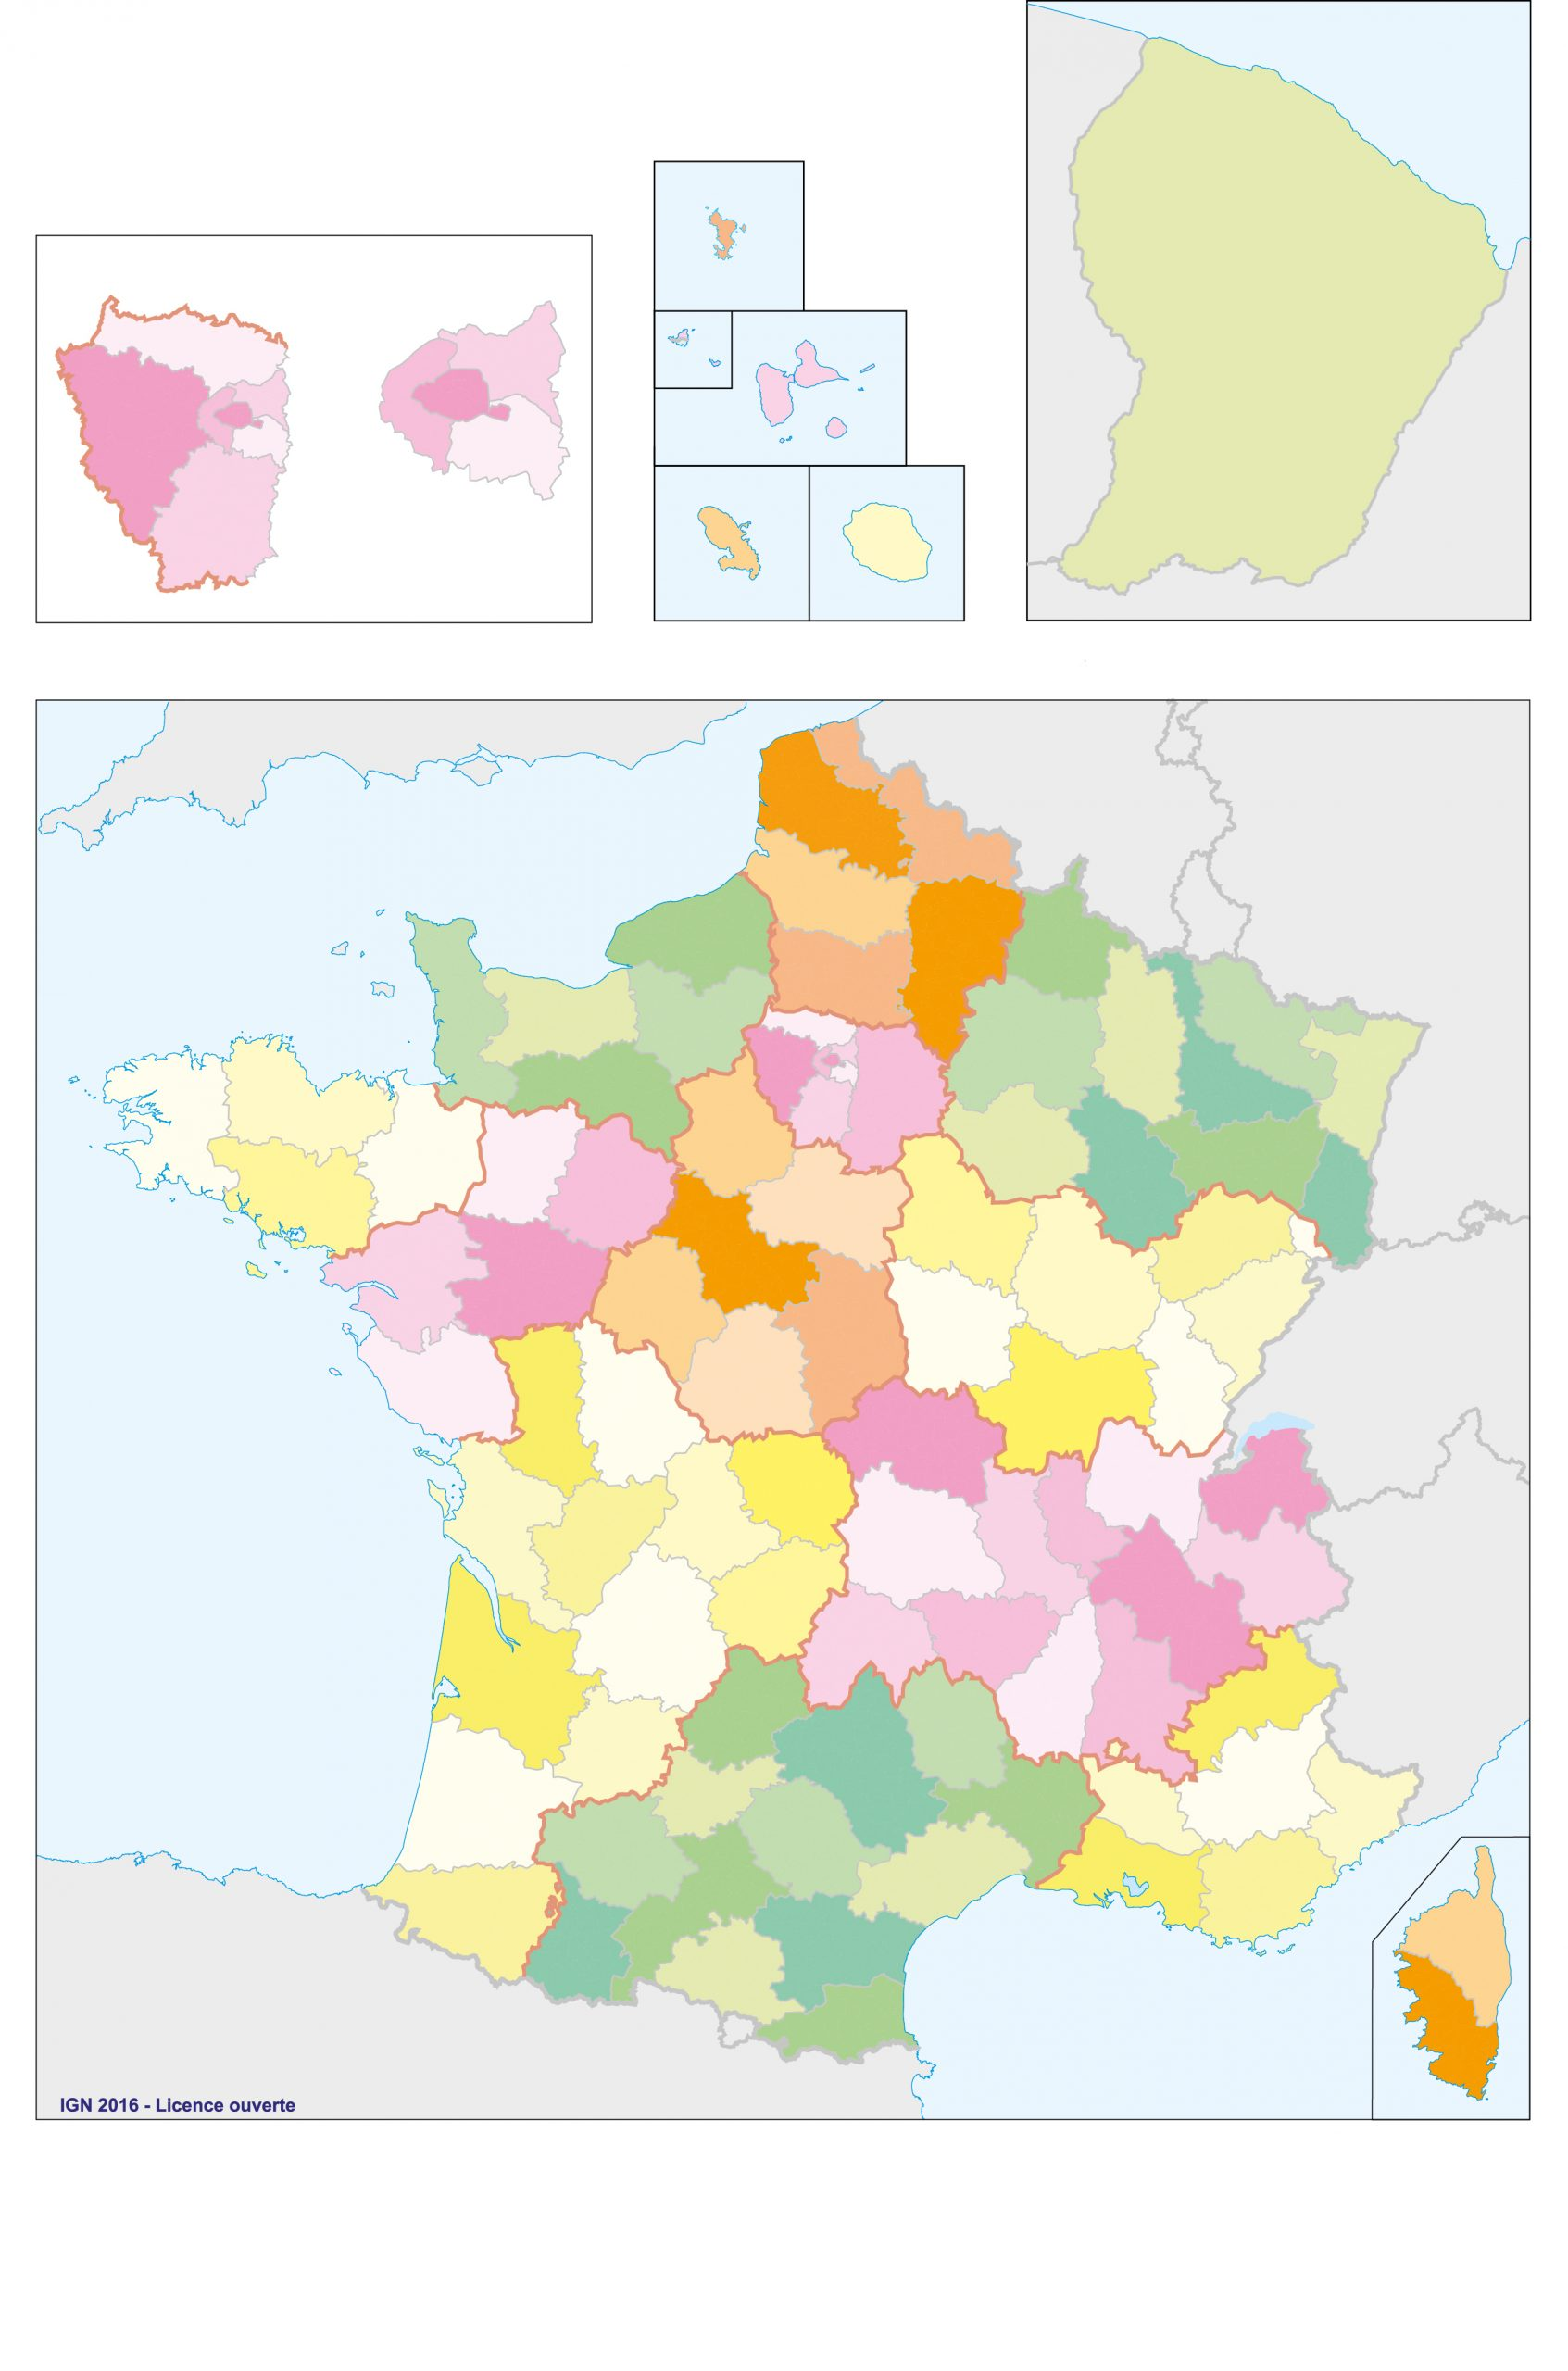 Fonds De Cartes | Éducation à Carte De La France Région